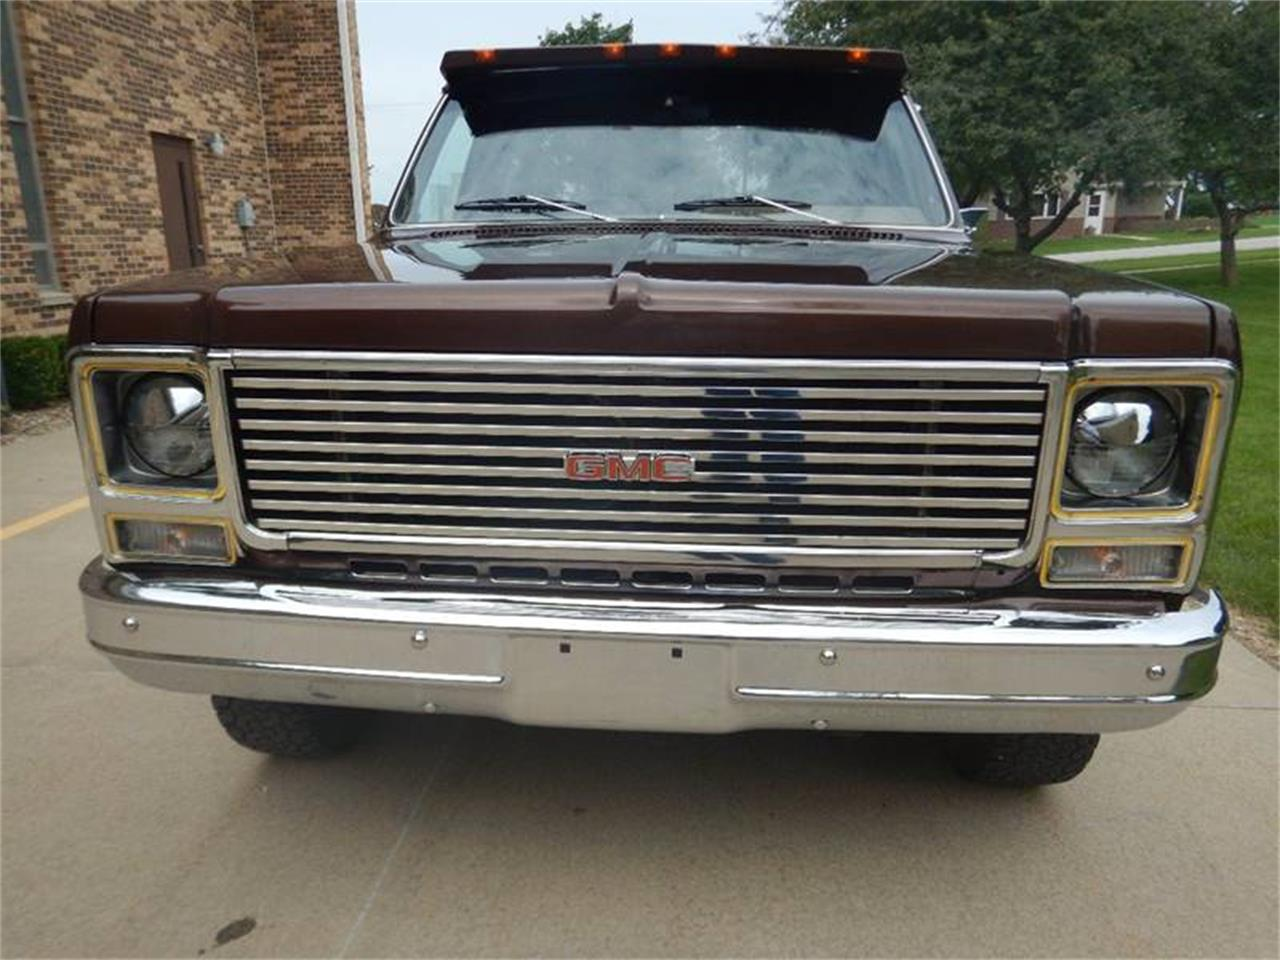 Large Picture of '79 GMC C/K 1500 Offered by Kinion Auto Sales & Service - NPBG